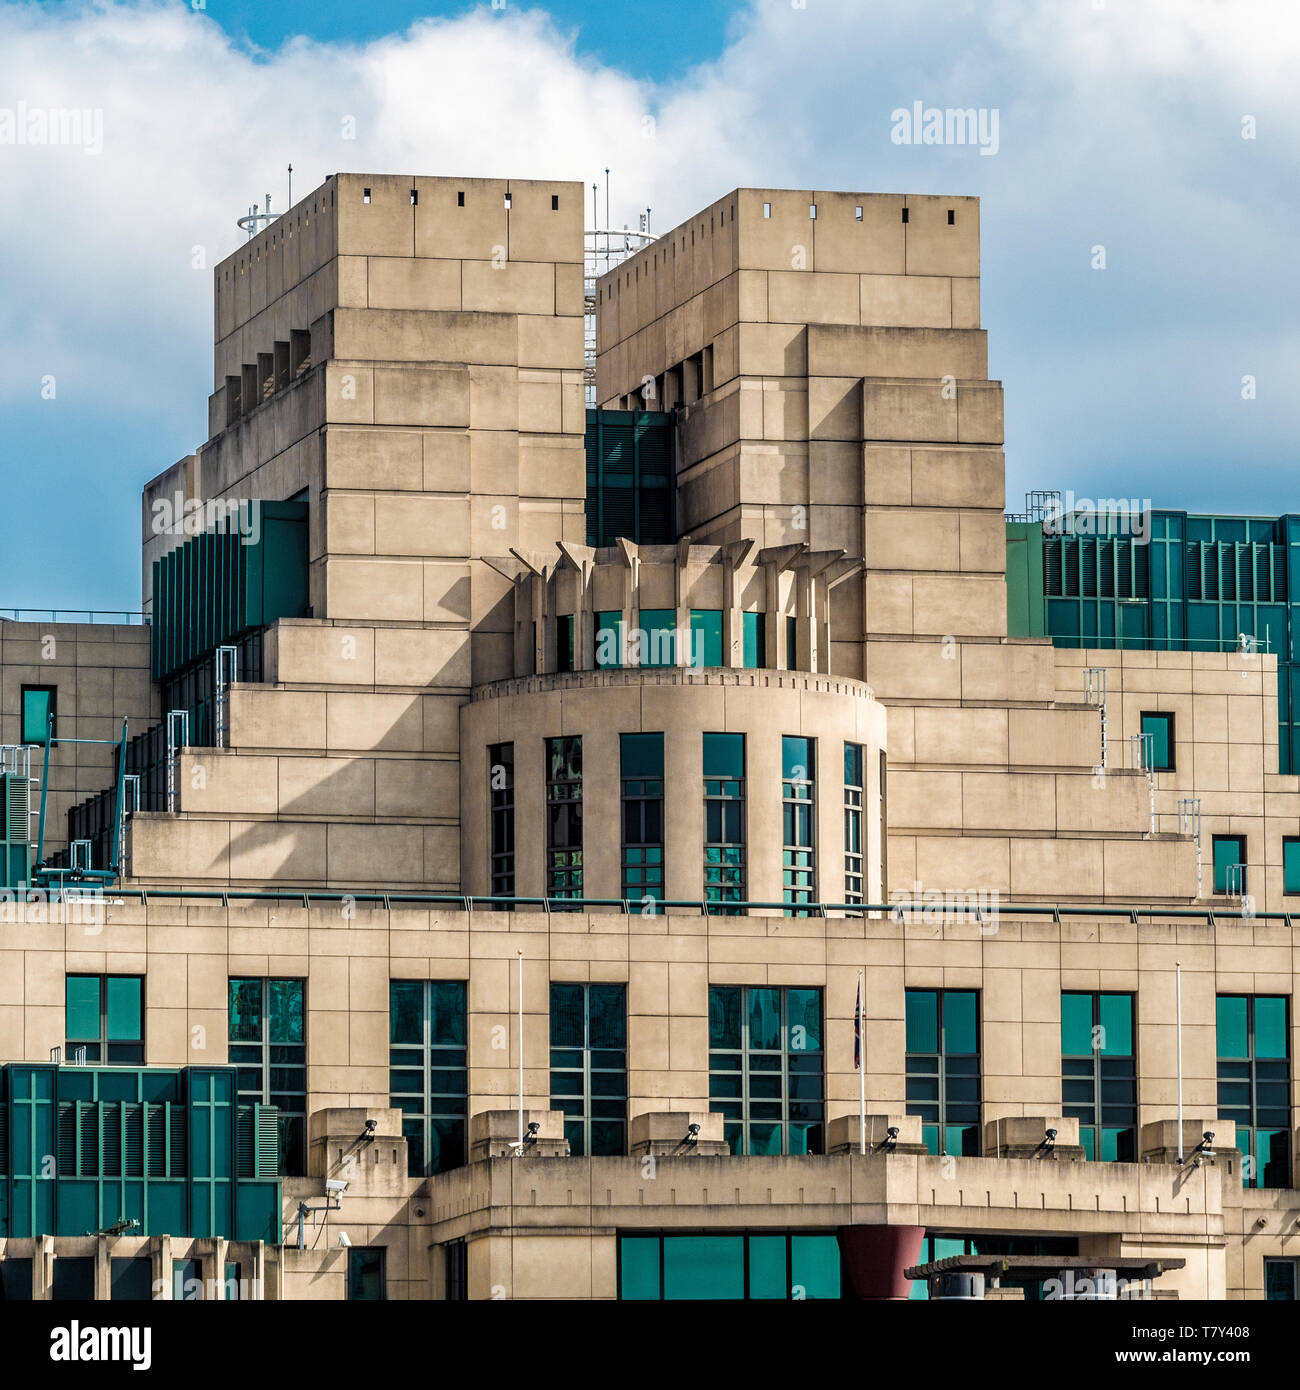 SIS Building (MI6 Building) at Vauxhall Cross, Albert Embankment, London, UK. Headquarters of the UK Secret Intelligence Service. - Stock Image